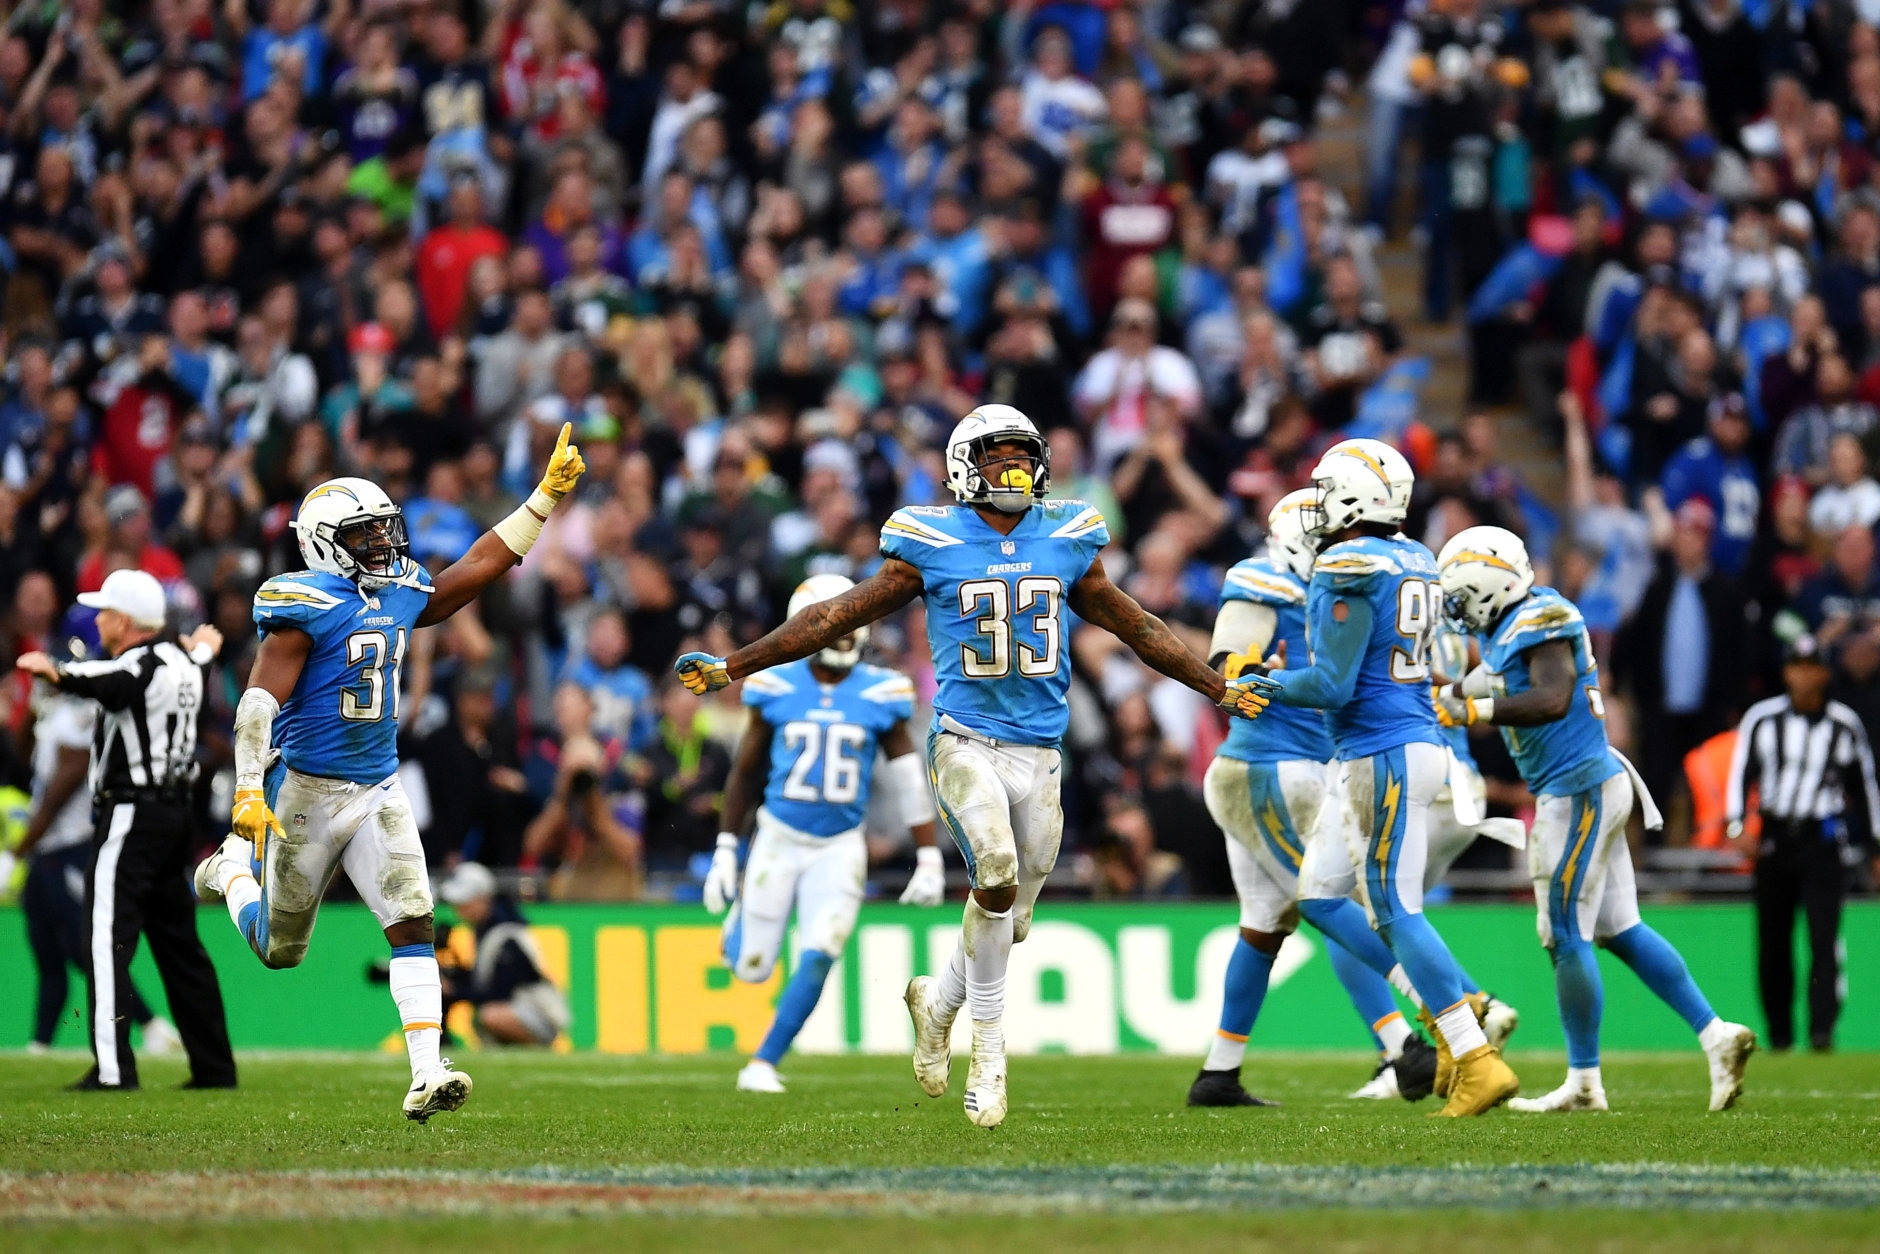 LONDON, ENGLAND - OCTOBER 21: Derwin James (33) of the Los Angeles Chargers celebrates with team mates after the final turnover during the Tennessee Titans against the Los Angeles Chargers at Wembley Stadium on October 21, 2018 in London, England. (Photo by Justin Setterfield/Getty Images)